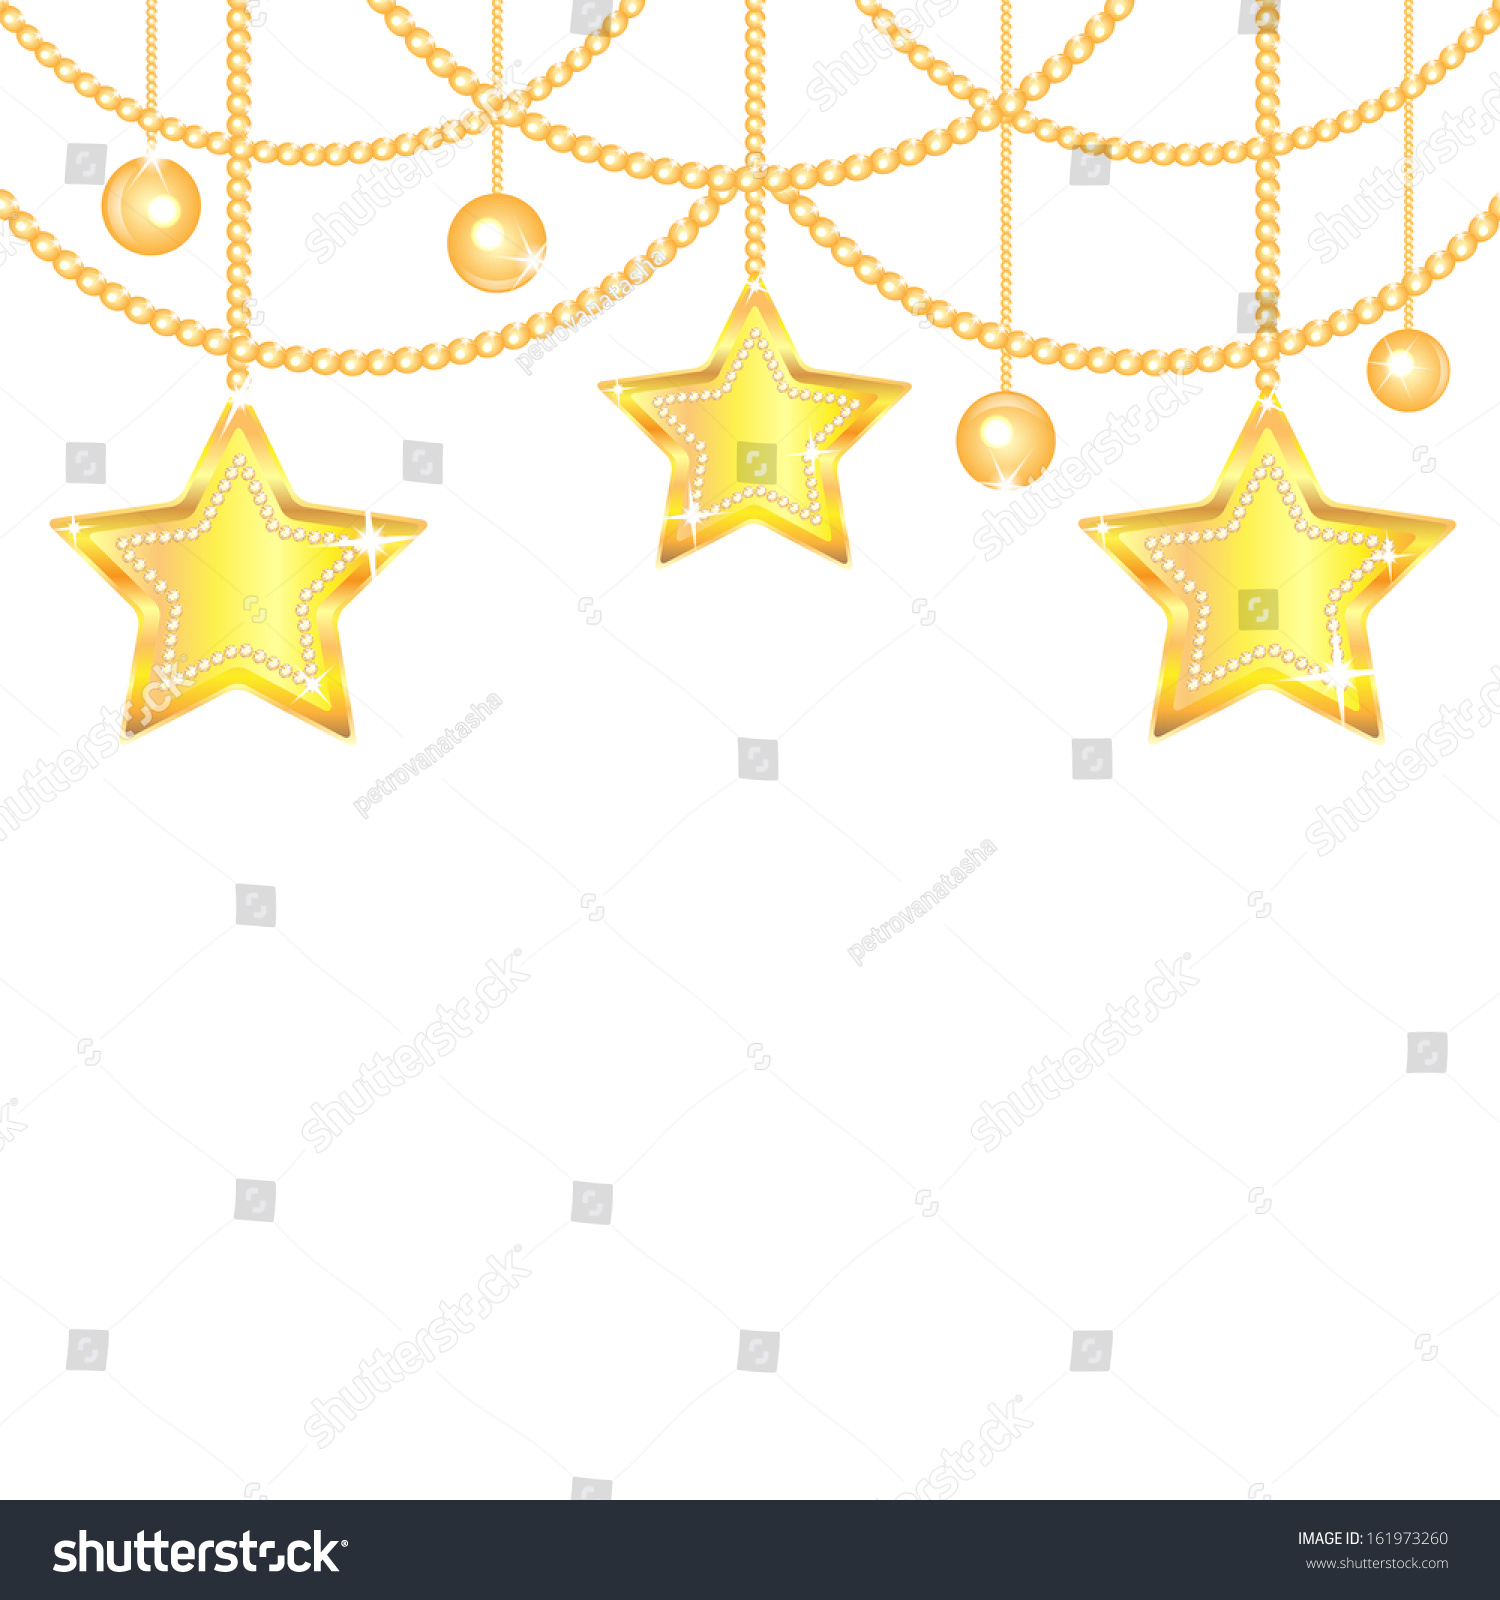 Gold star ornaments - Christmas Background Gold Stars And Balls Isolated On White Background New Year Golden Ornaments